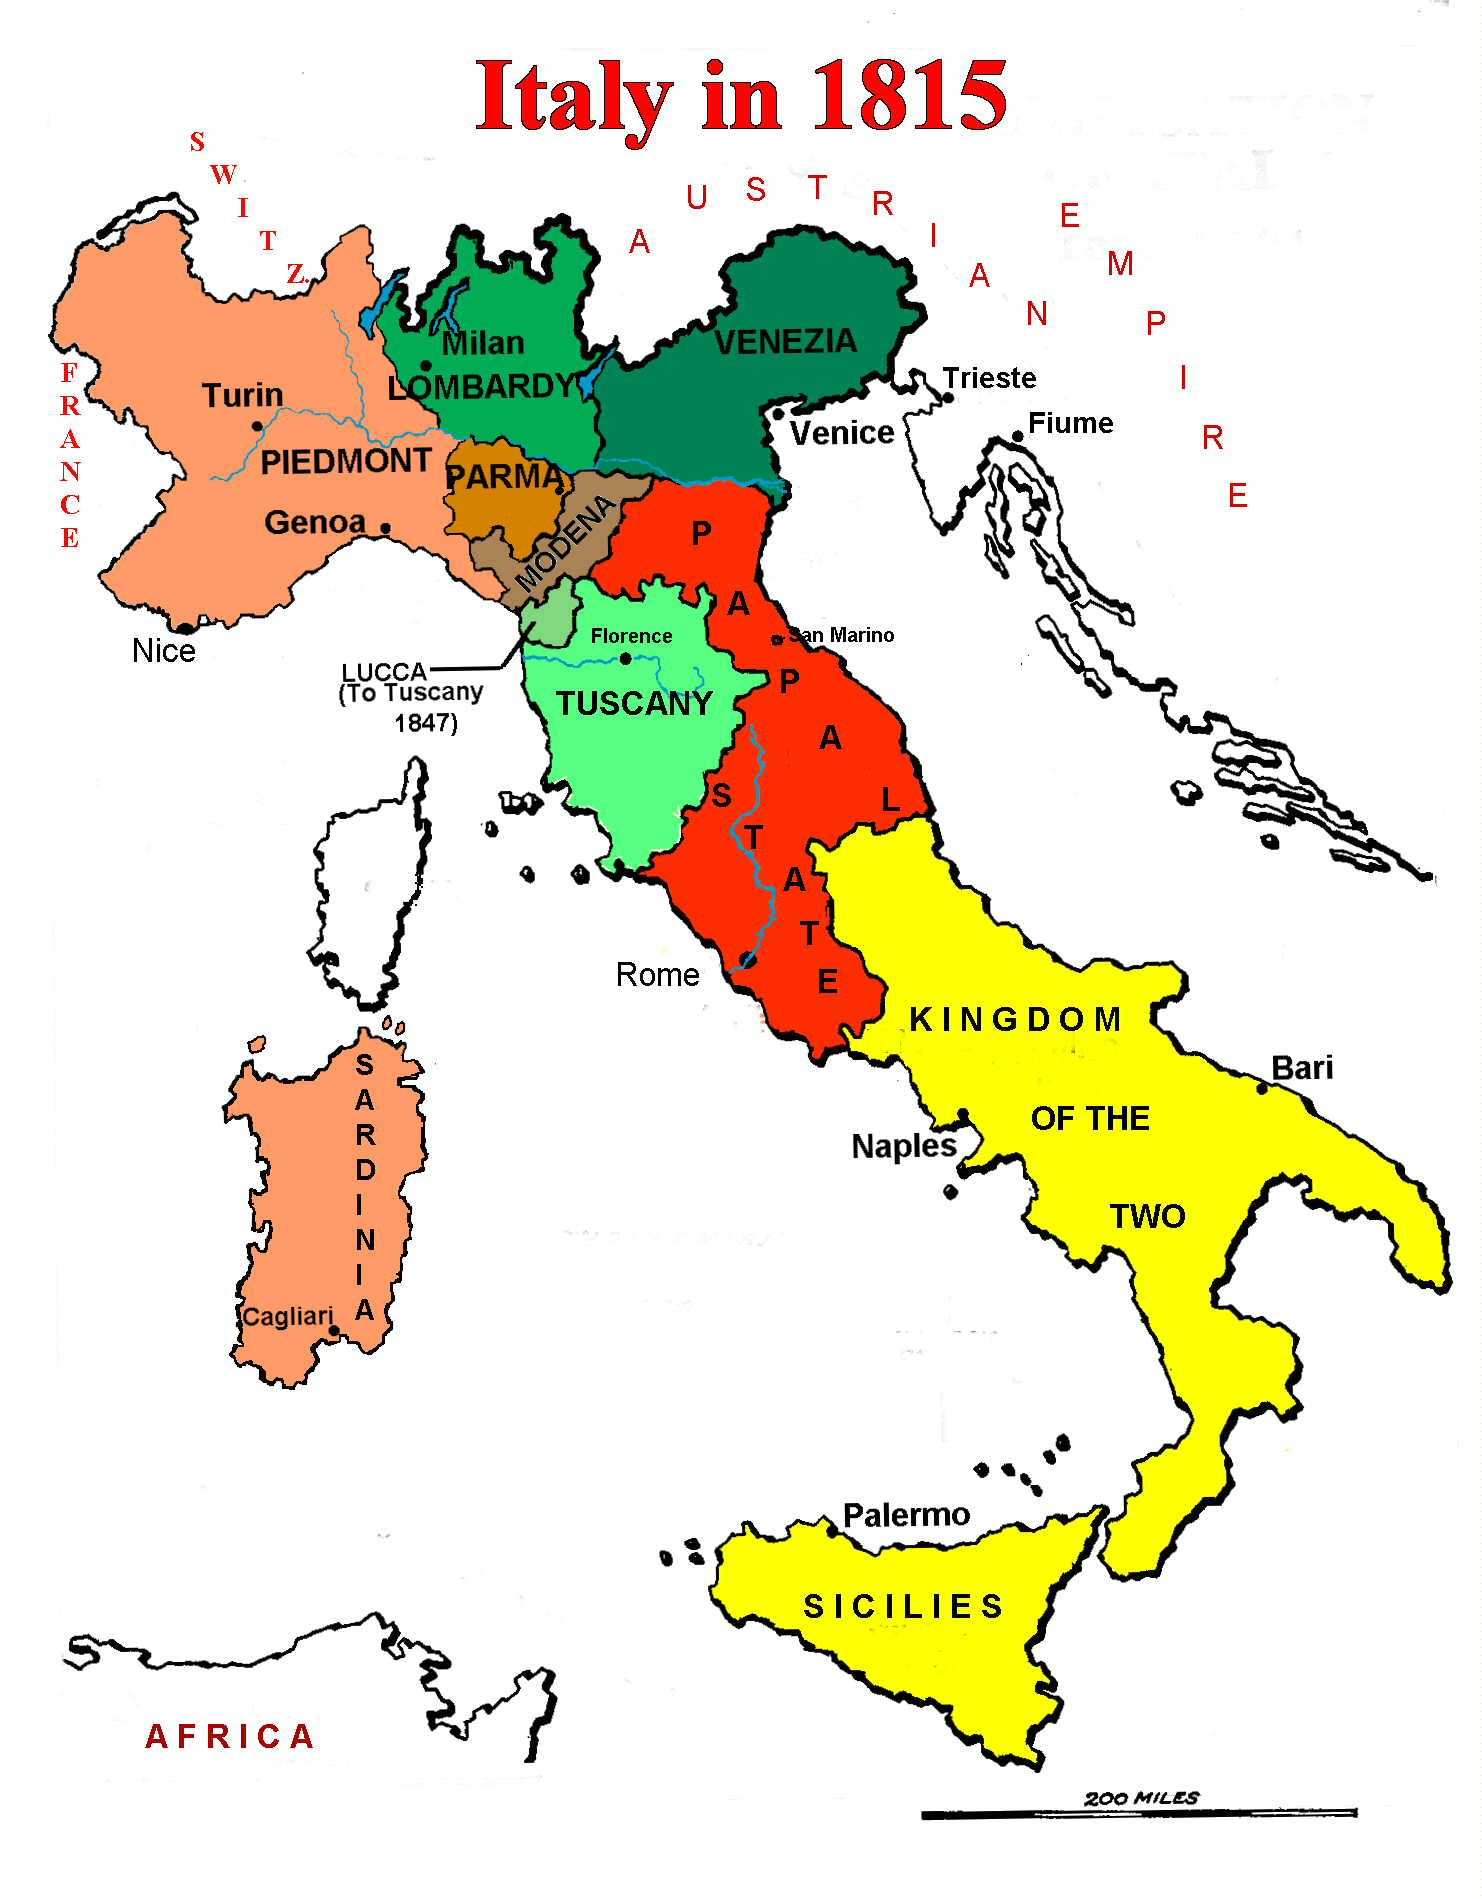 why did the 1848 revolutions fail? essay There was lack of leadership charles albert, pope pius ix and mazzini were all possible contenders for uniting italy but they all proved unsuccessful charles albert declared war on austria and it seemed initially like he was going to win but he was defeated 24th july 1848 battle of custozza.